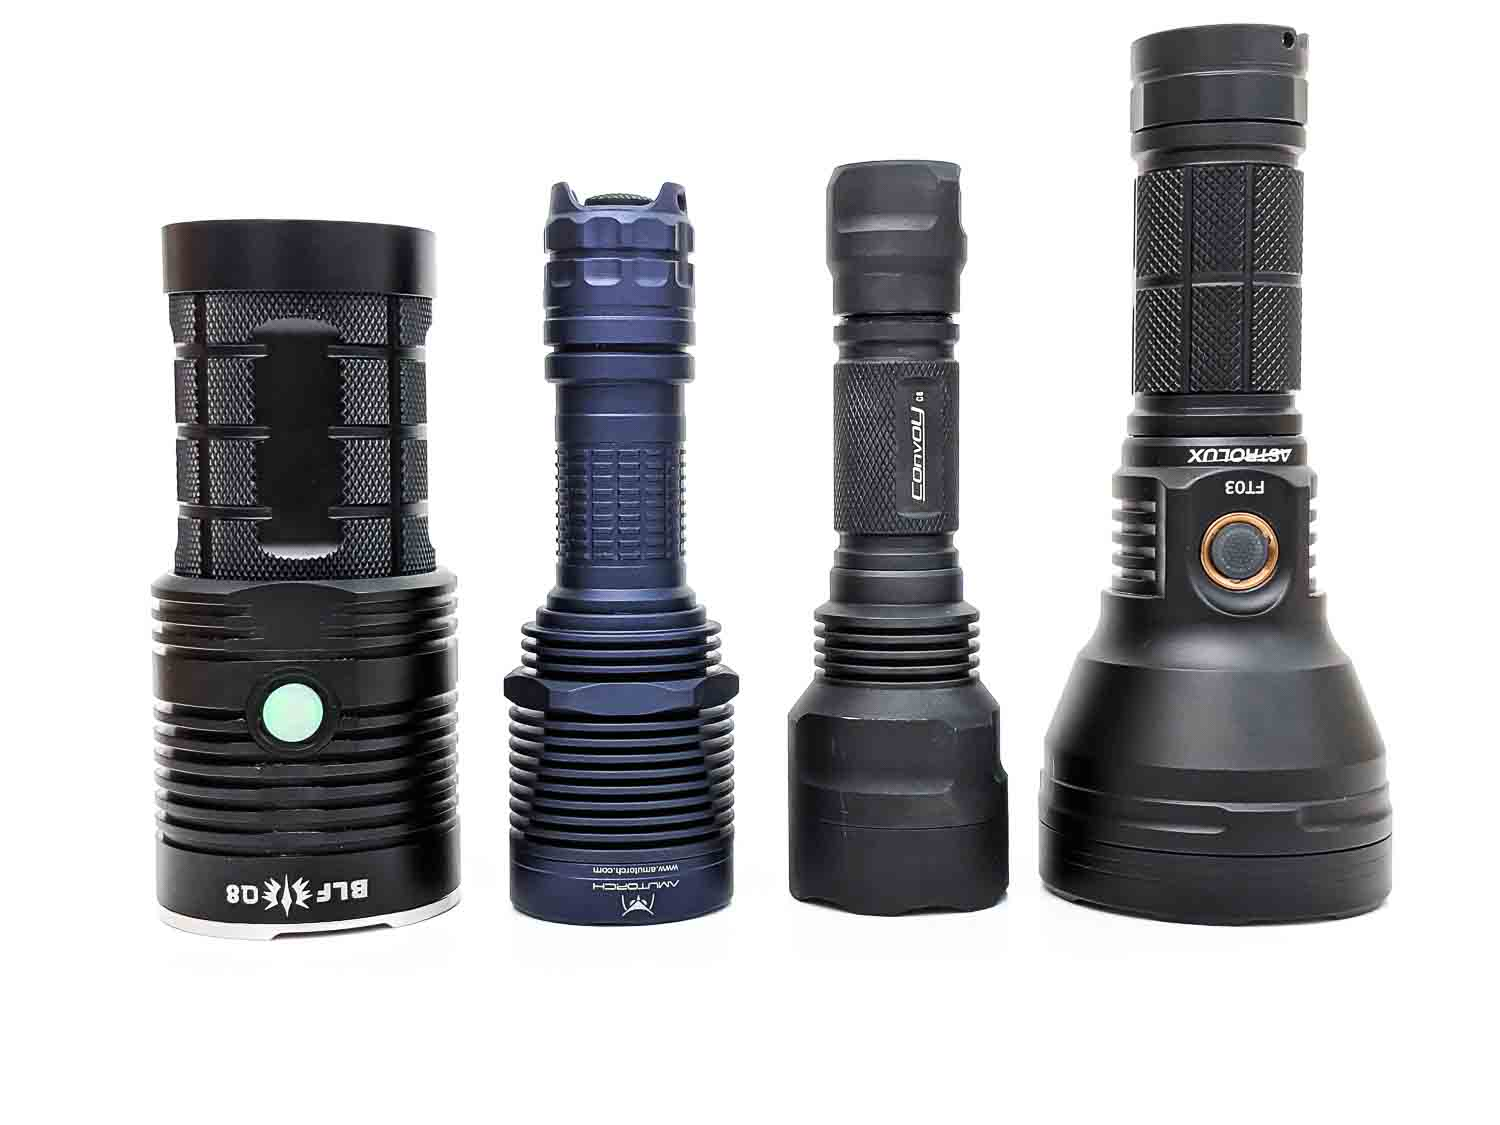 amutorch xt45 compared to other flashights